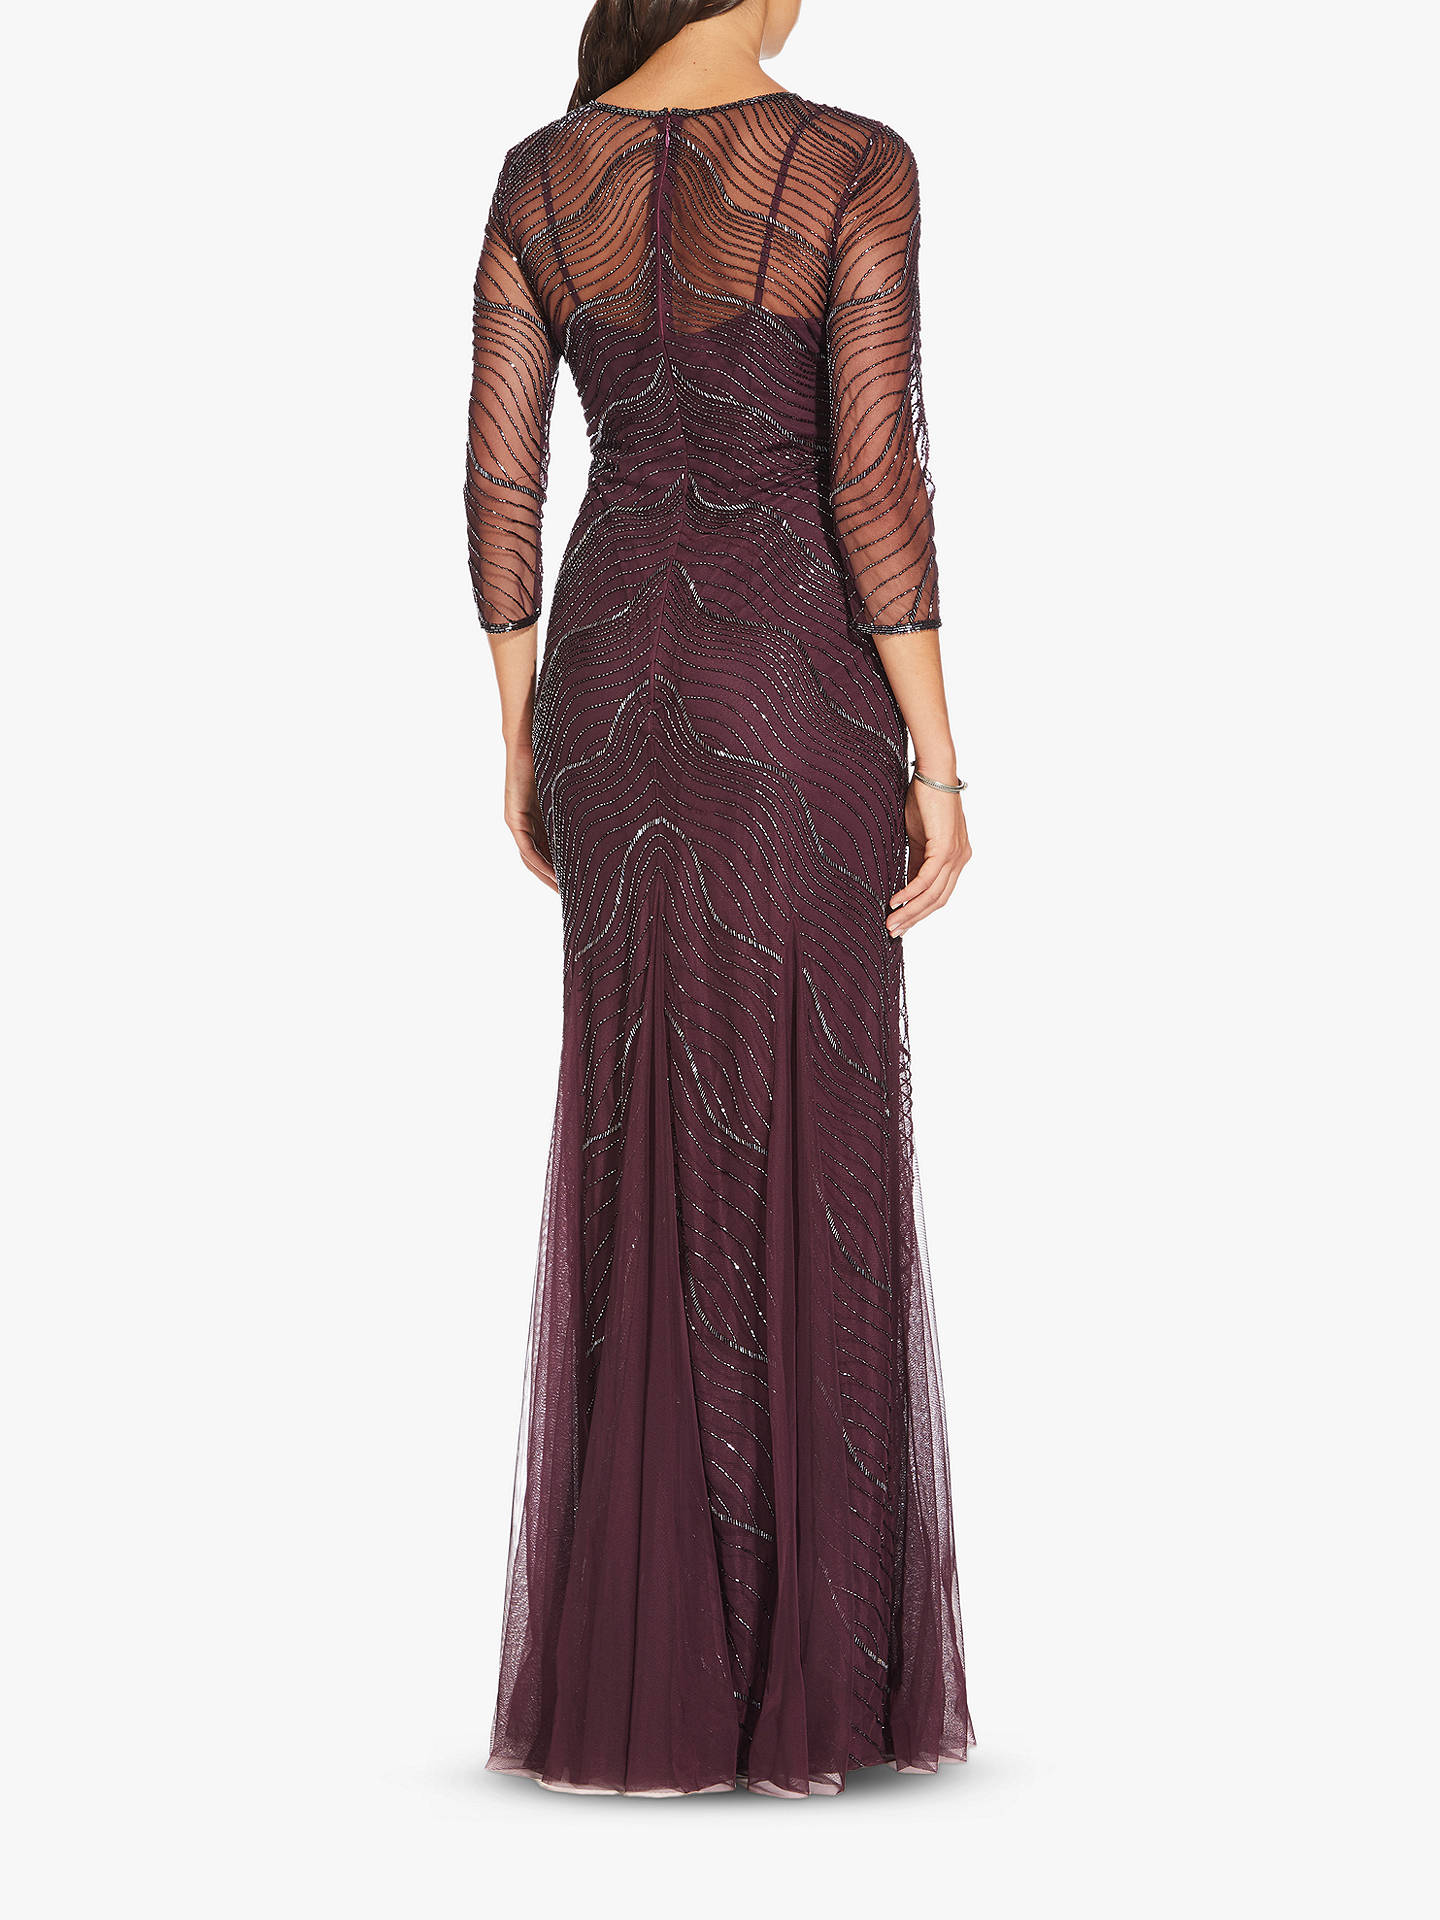 BuyAdrianna Papell Beaded Godet Gown, Night Plum, 8 Online at johnlewis.com